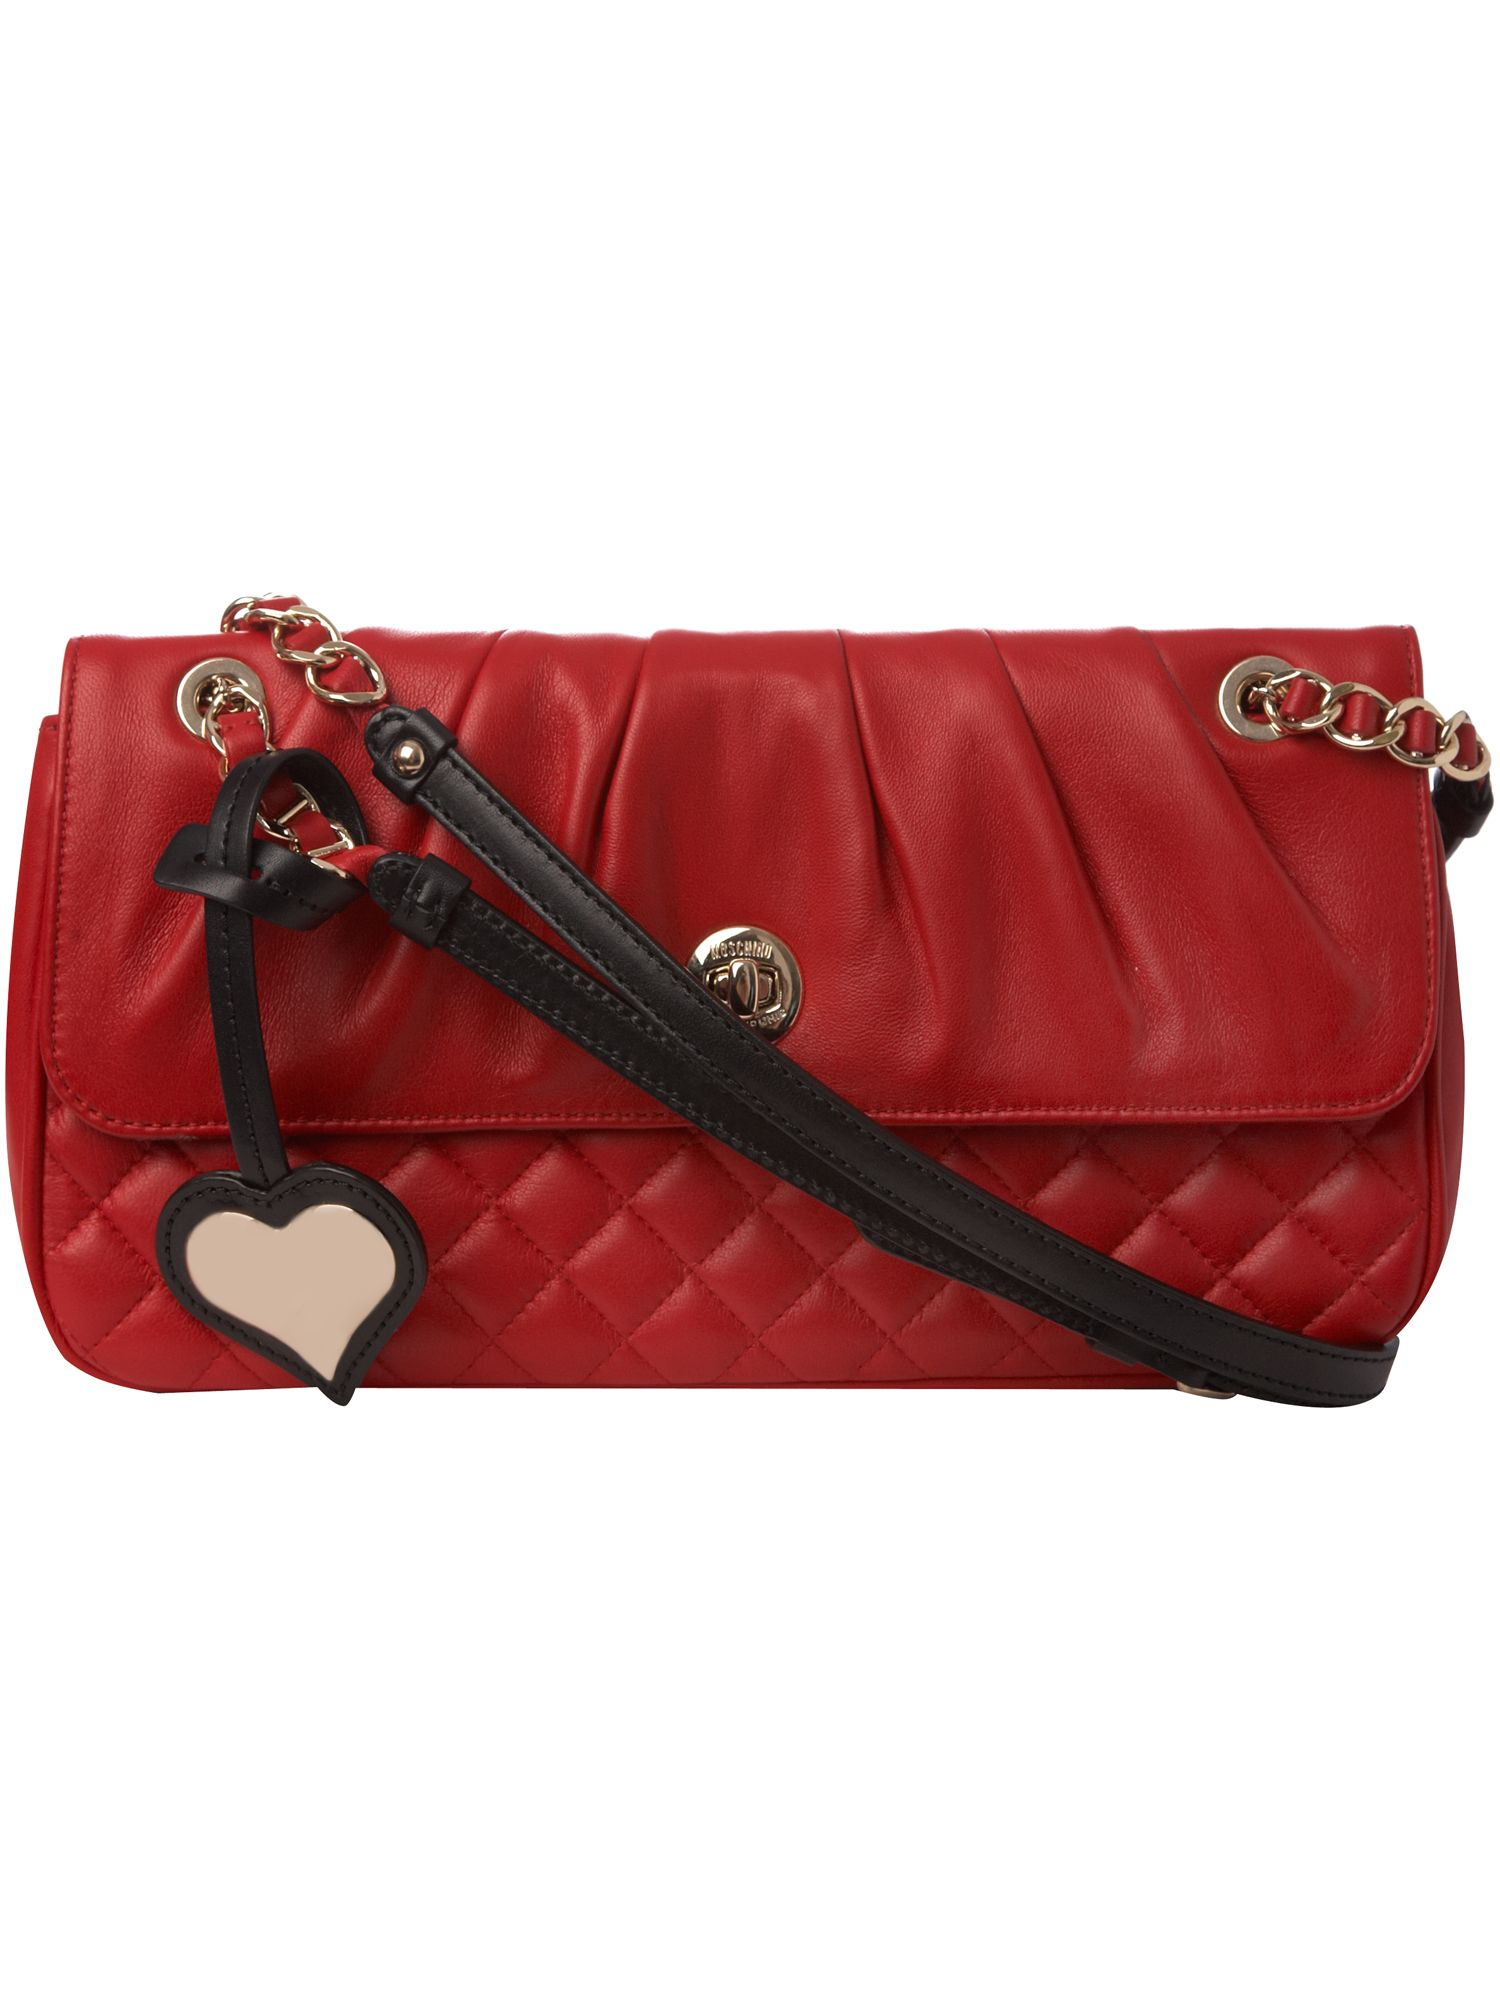 Moschino Cheap & Chic Nappa Medium leather Cross Body bag. product image